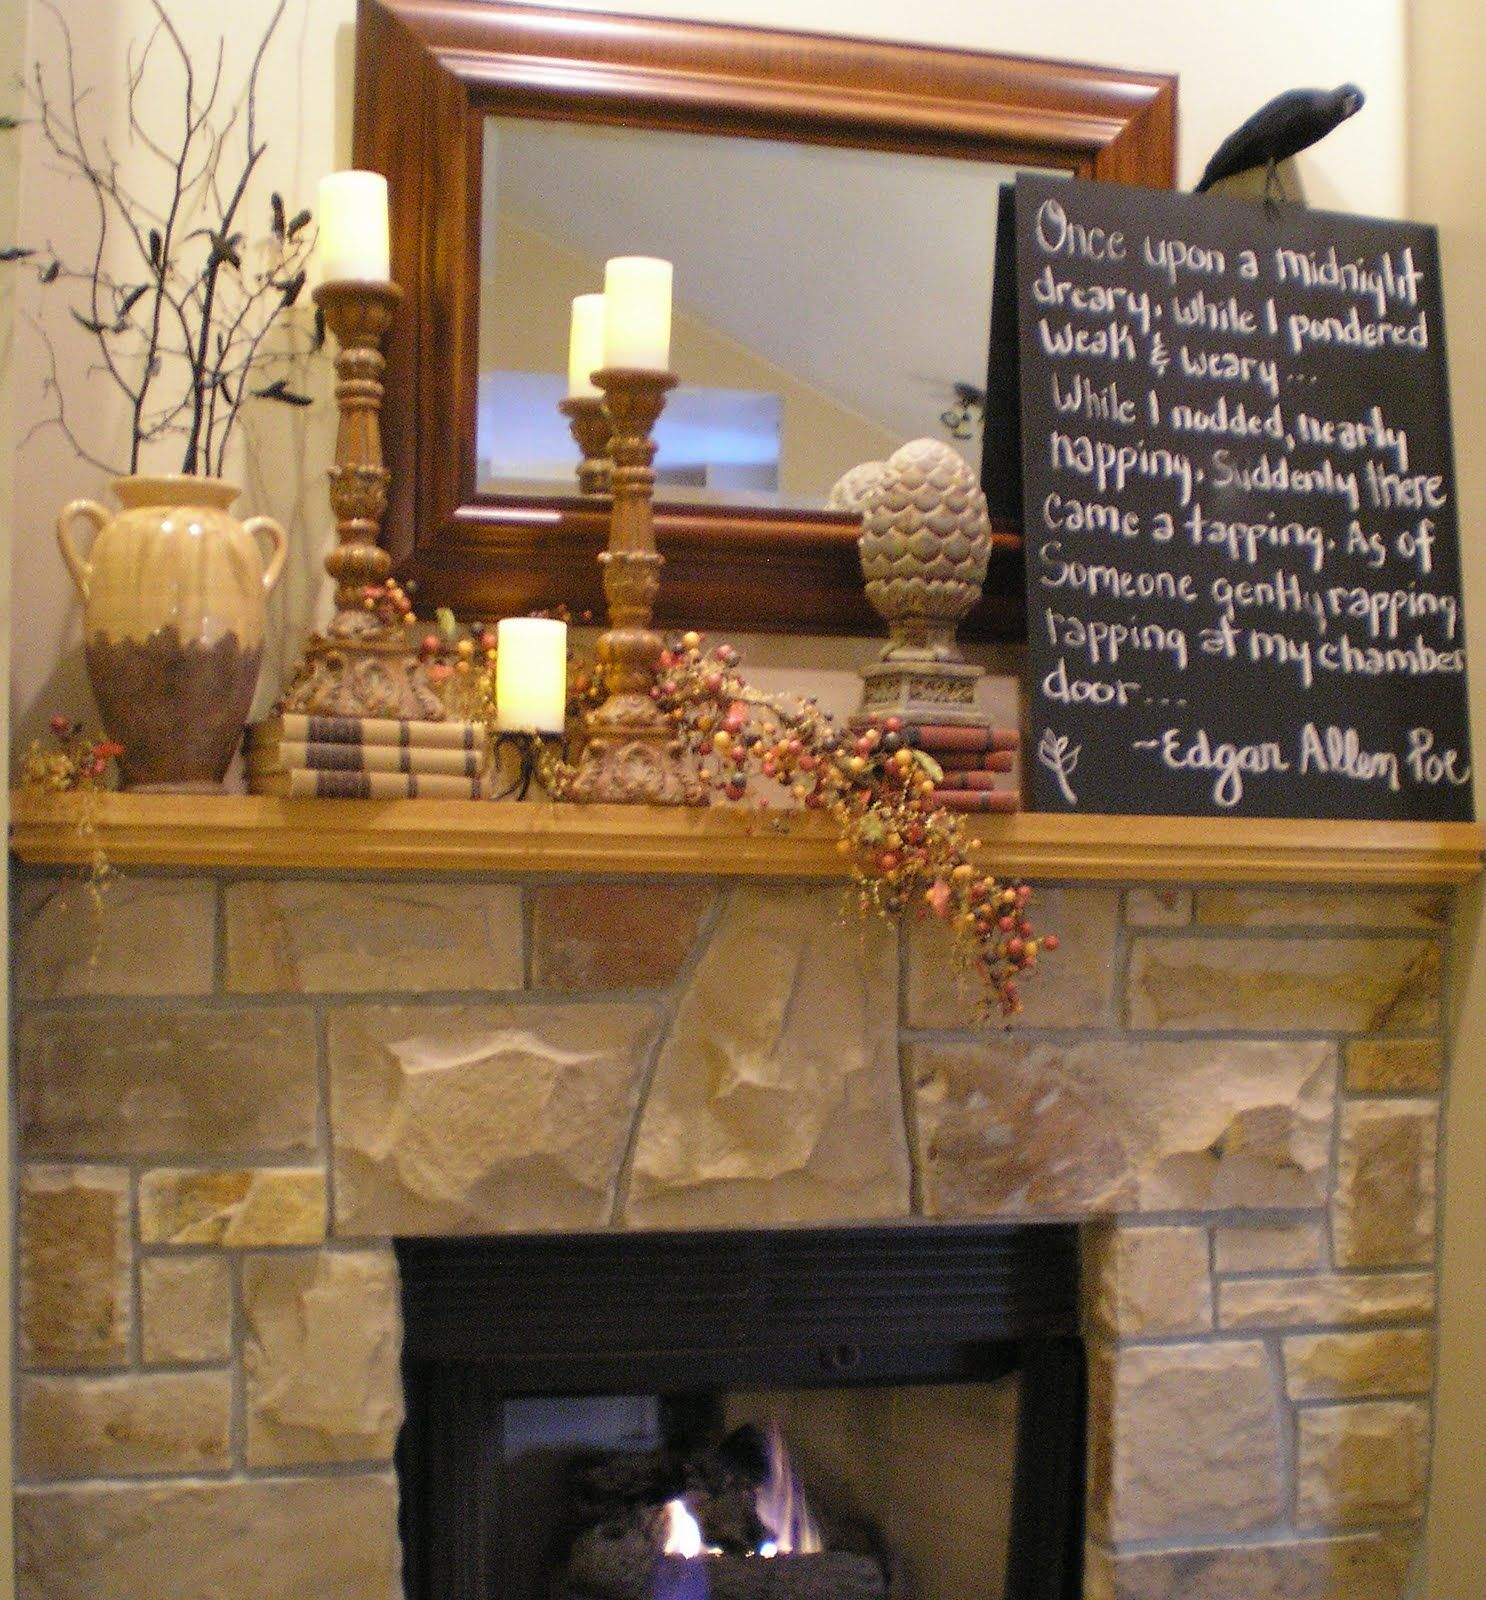 17 Best images about mantel decorating – Ideas for Mantel Decor